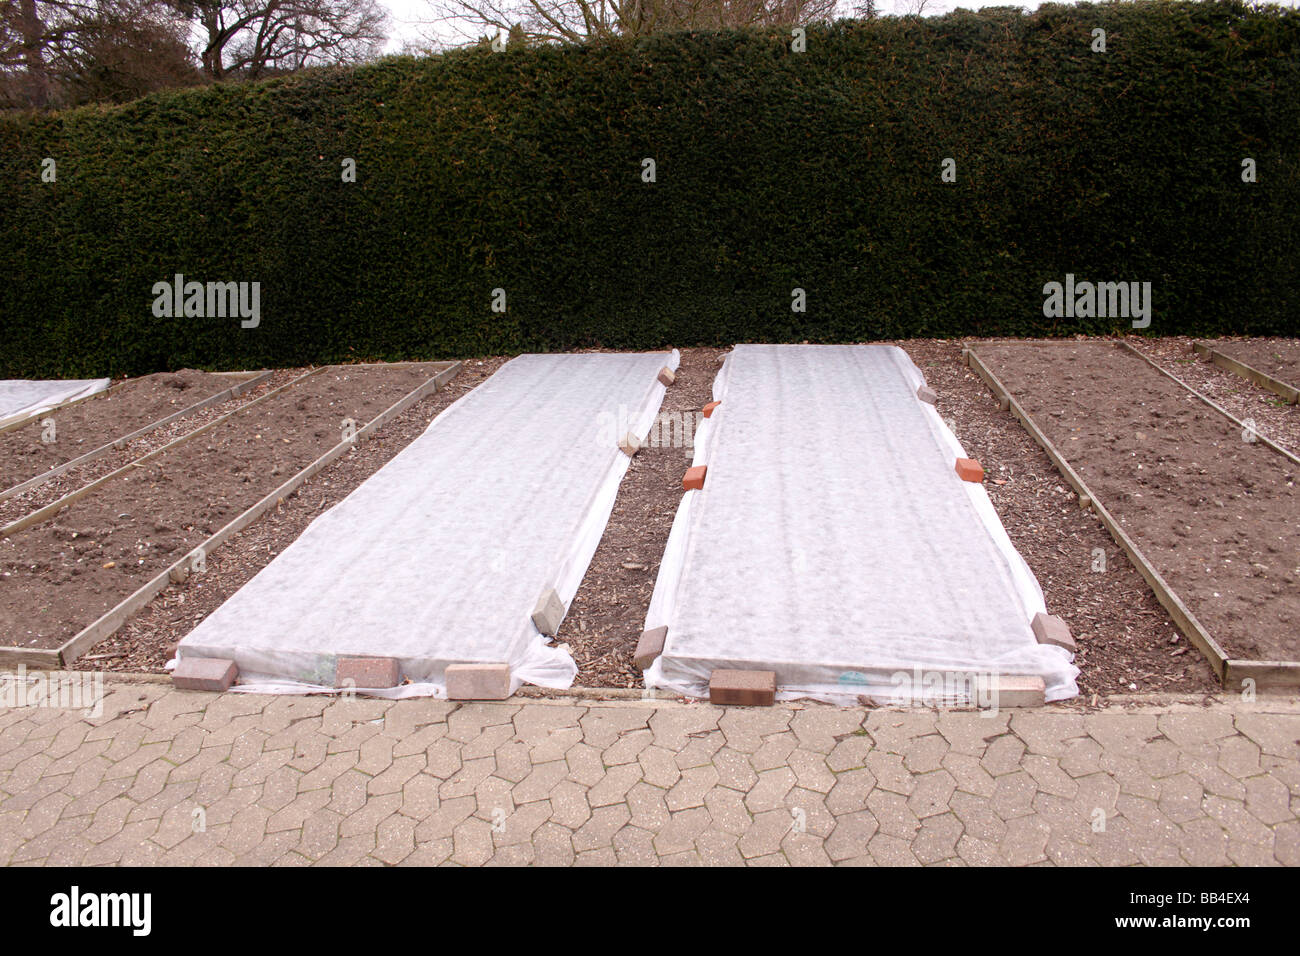 HORTICULTURAL FLEECE COVERING A VEGETABLE PATCH IN EARLY SPRING. RHS WISLEY. - Stock Image